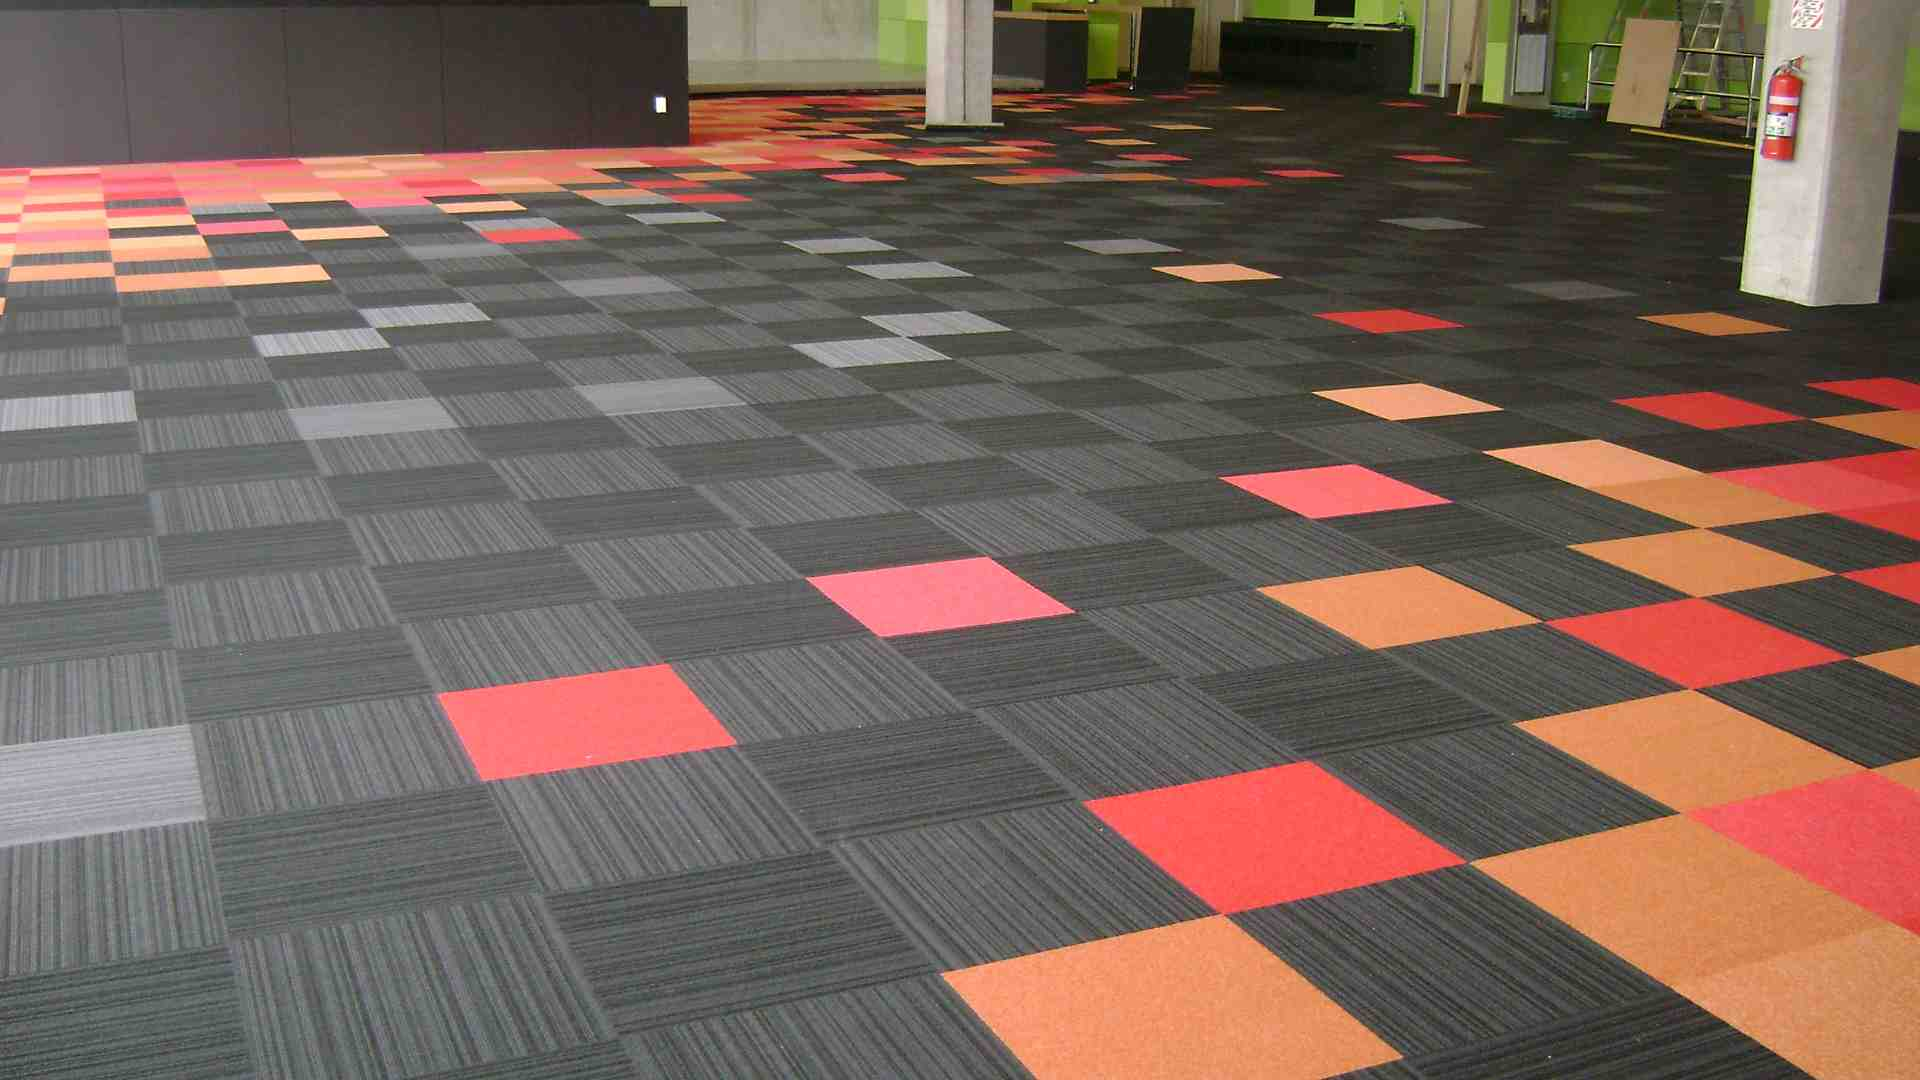 rubber floor tiles - Carpet Tile Design Ideas